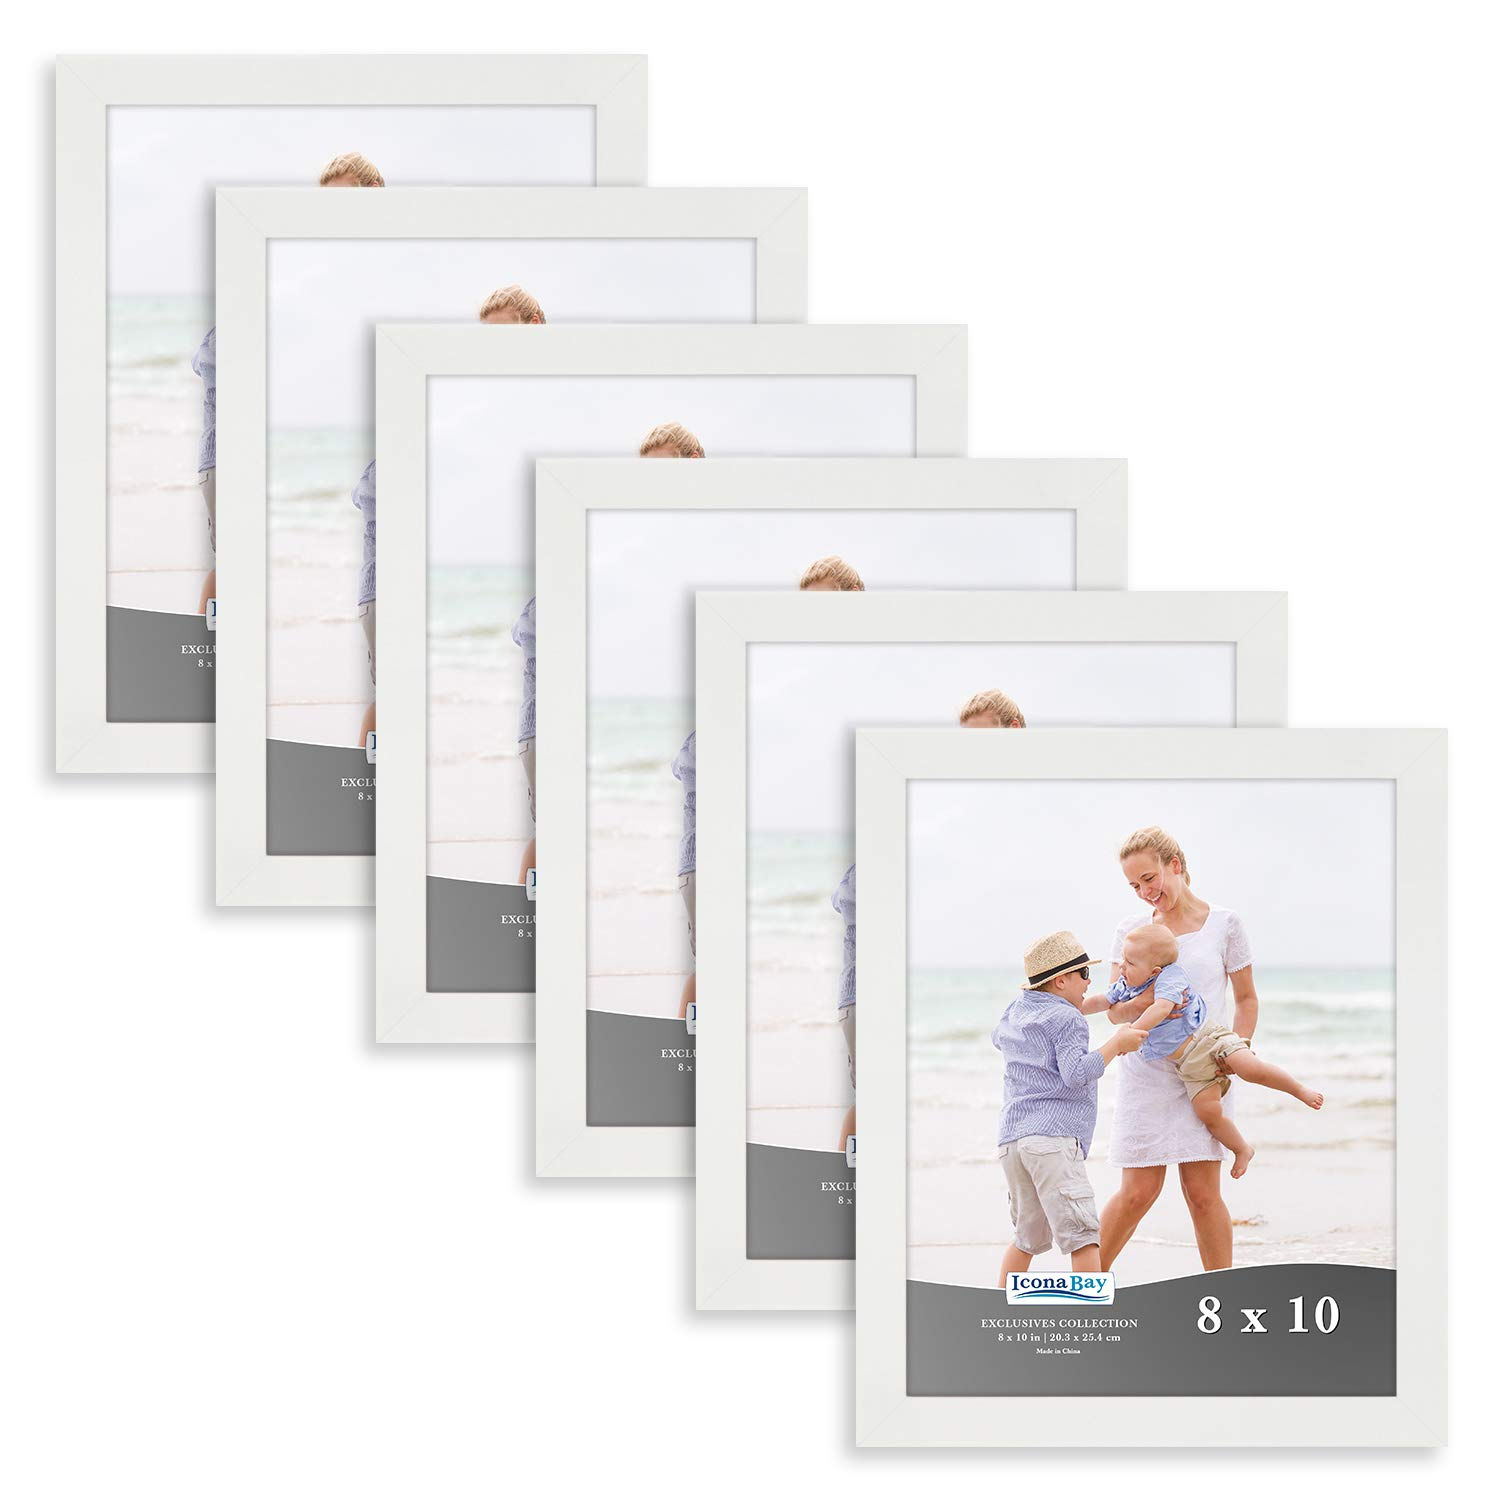 Icona Bay 8x10 Picture Frame (6 Pack, White), White Sturdy Wood Composite Photo Frame 8 x 10, Wall or Table Mount, Set of 6 Exclusives Collection by Icona Bay